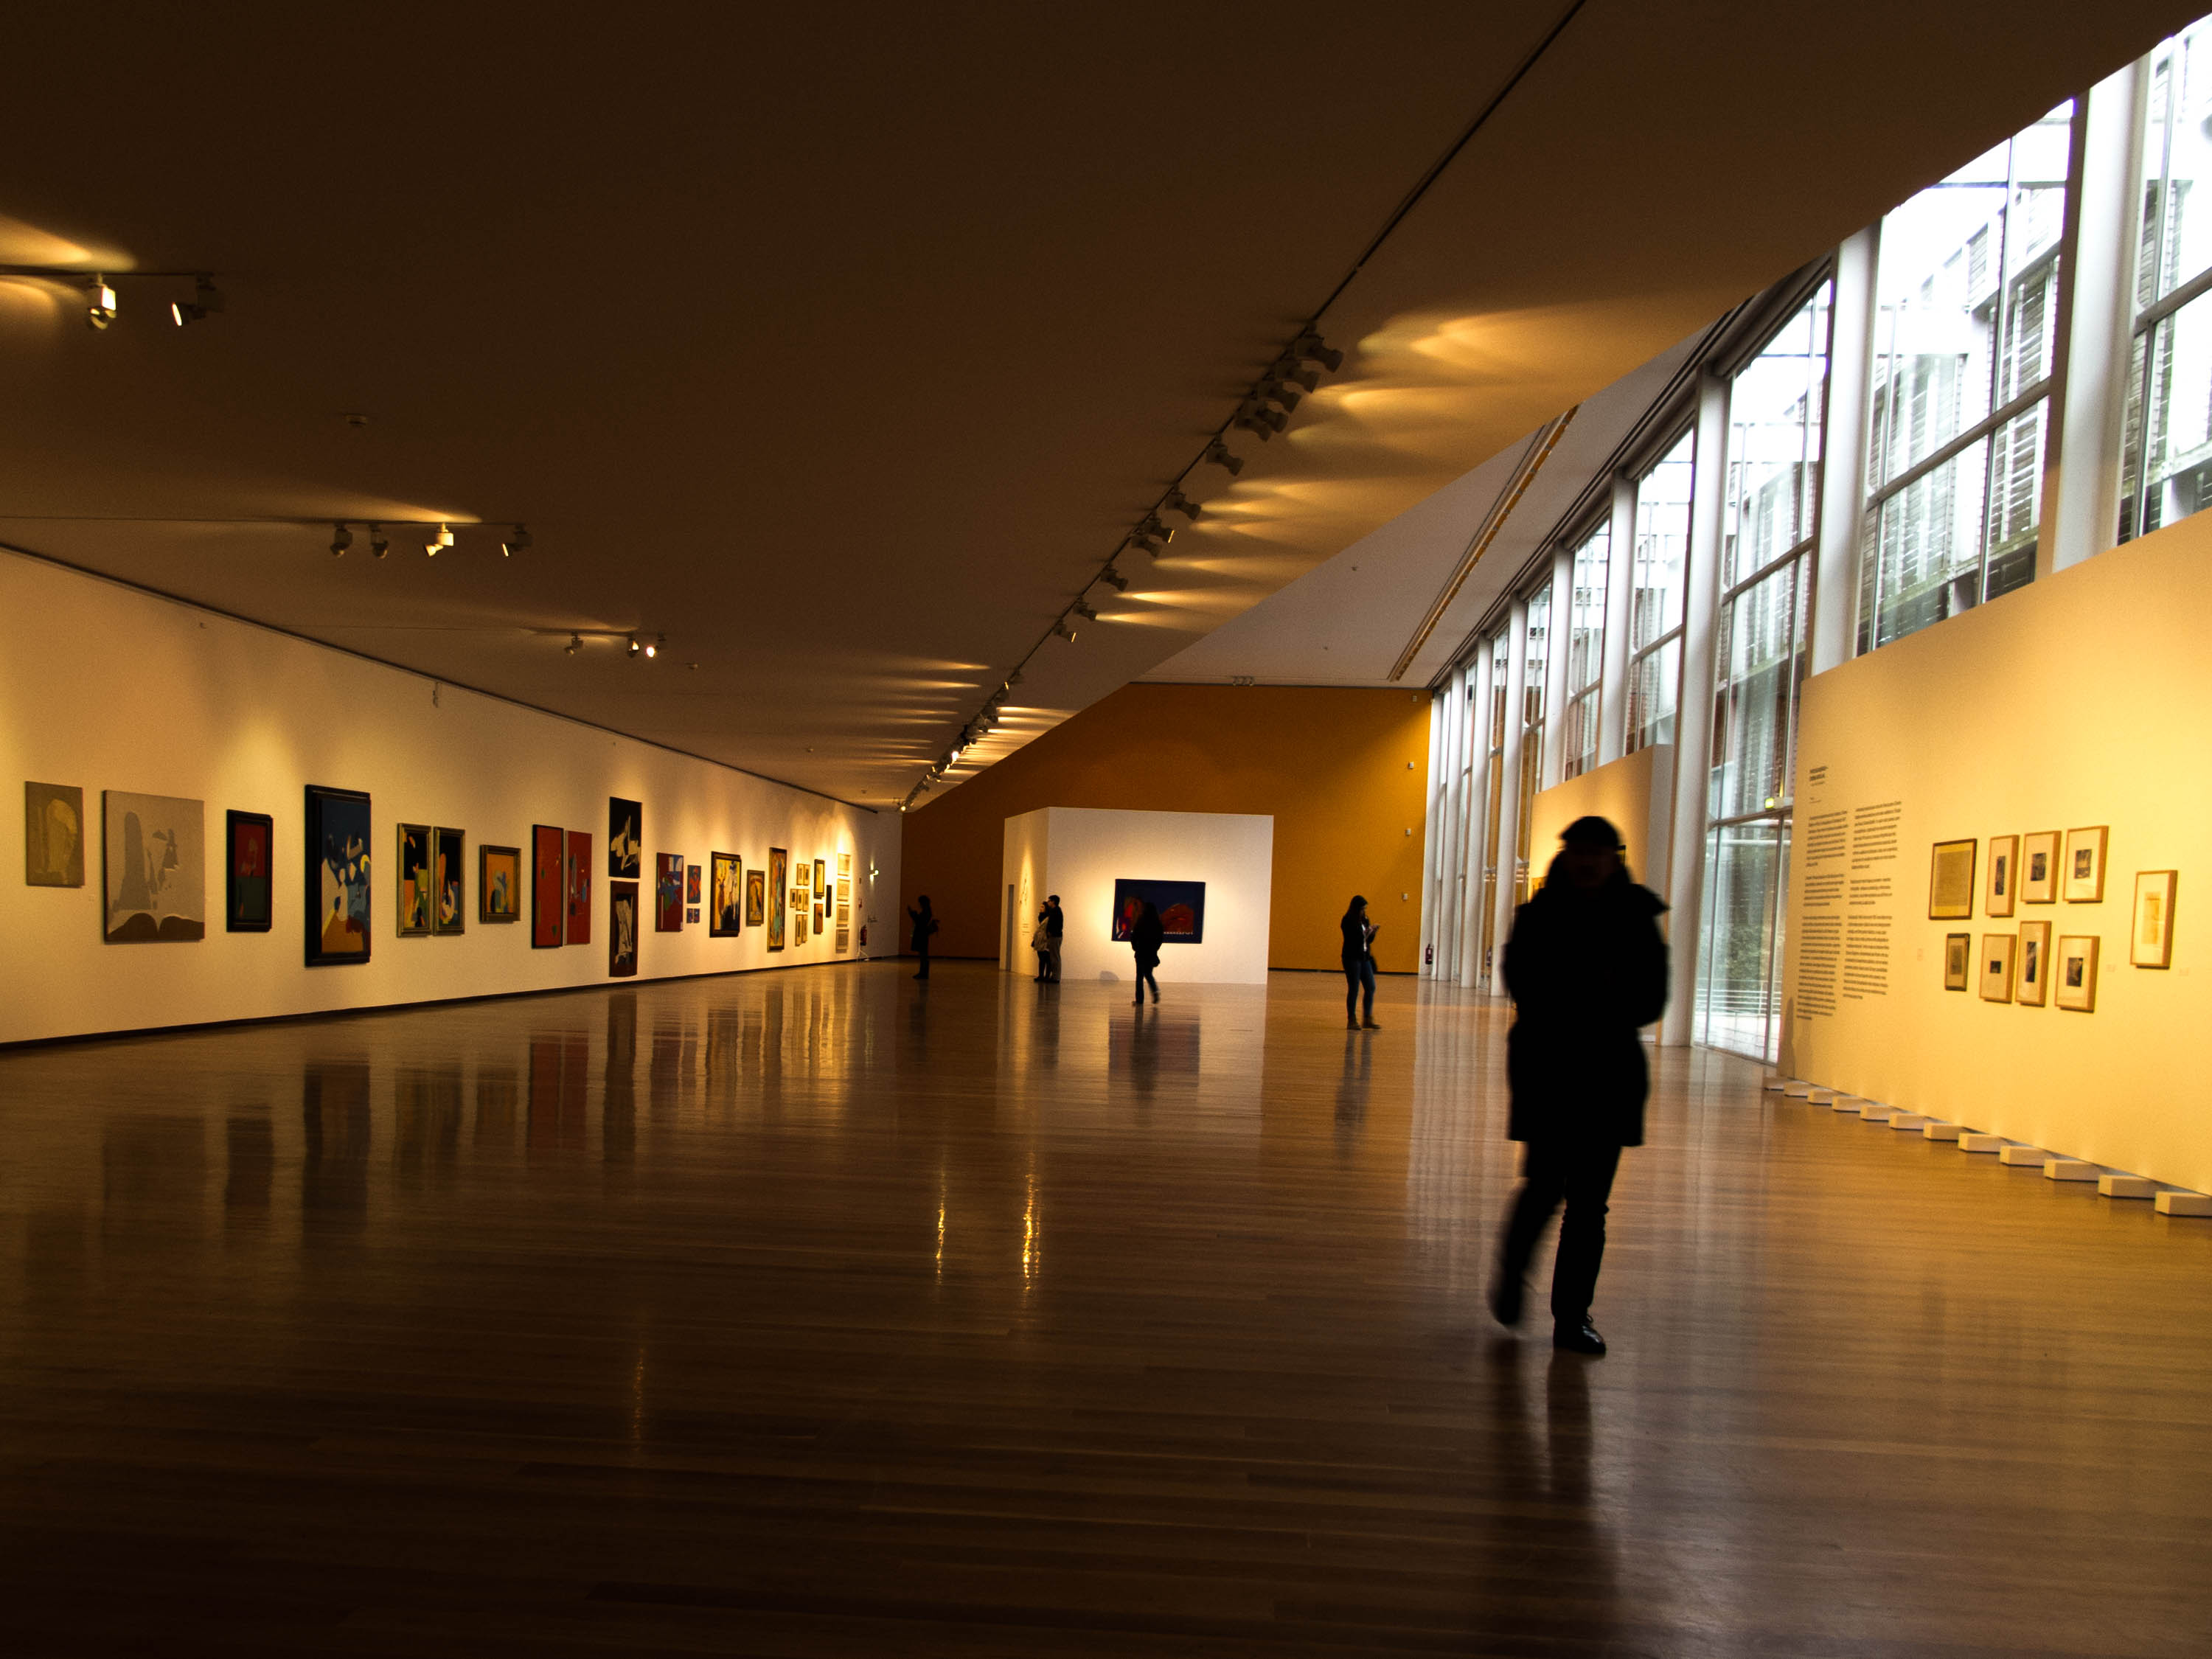 The inside of the municipal art gallery